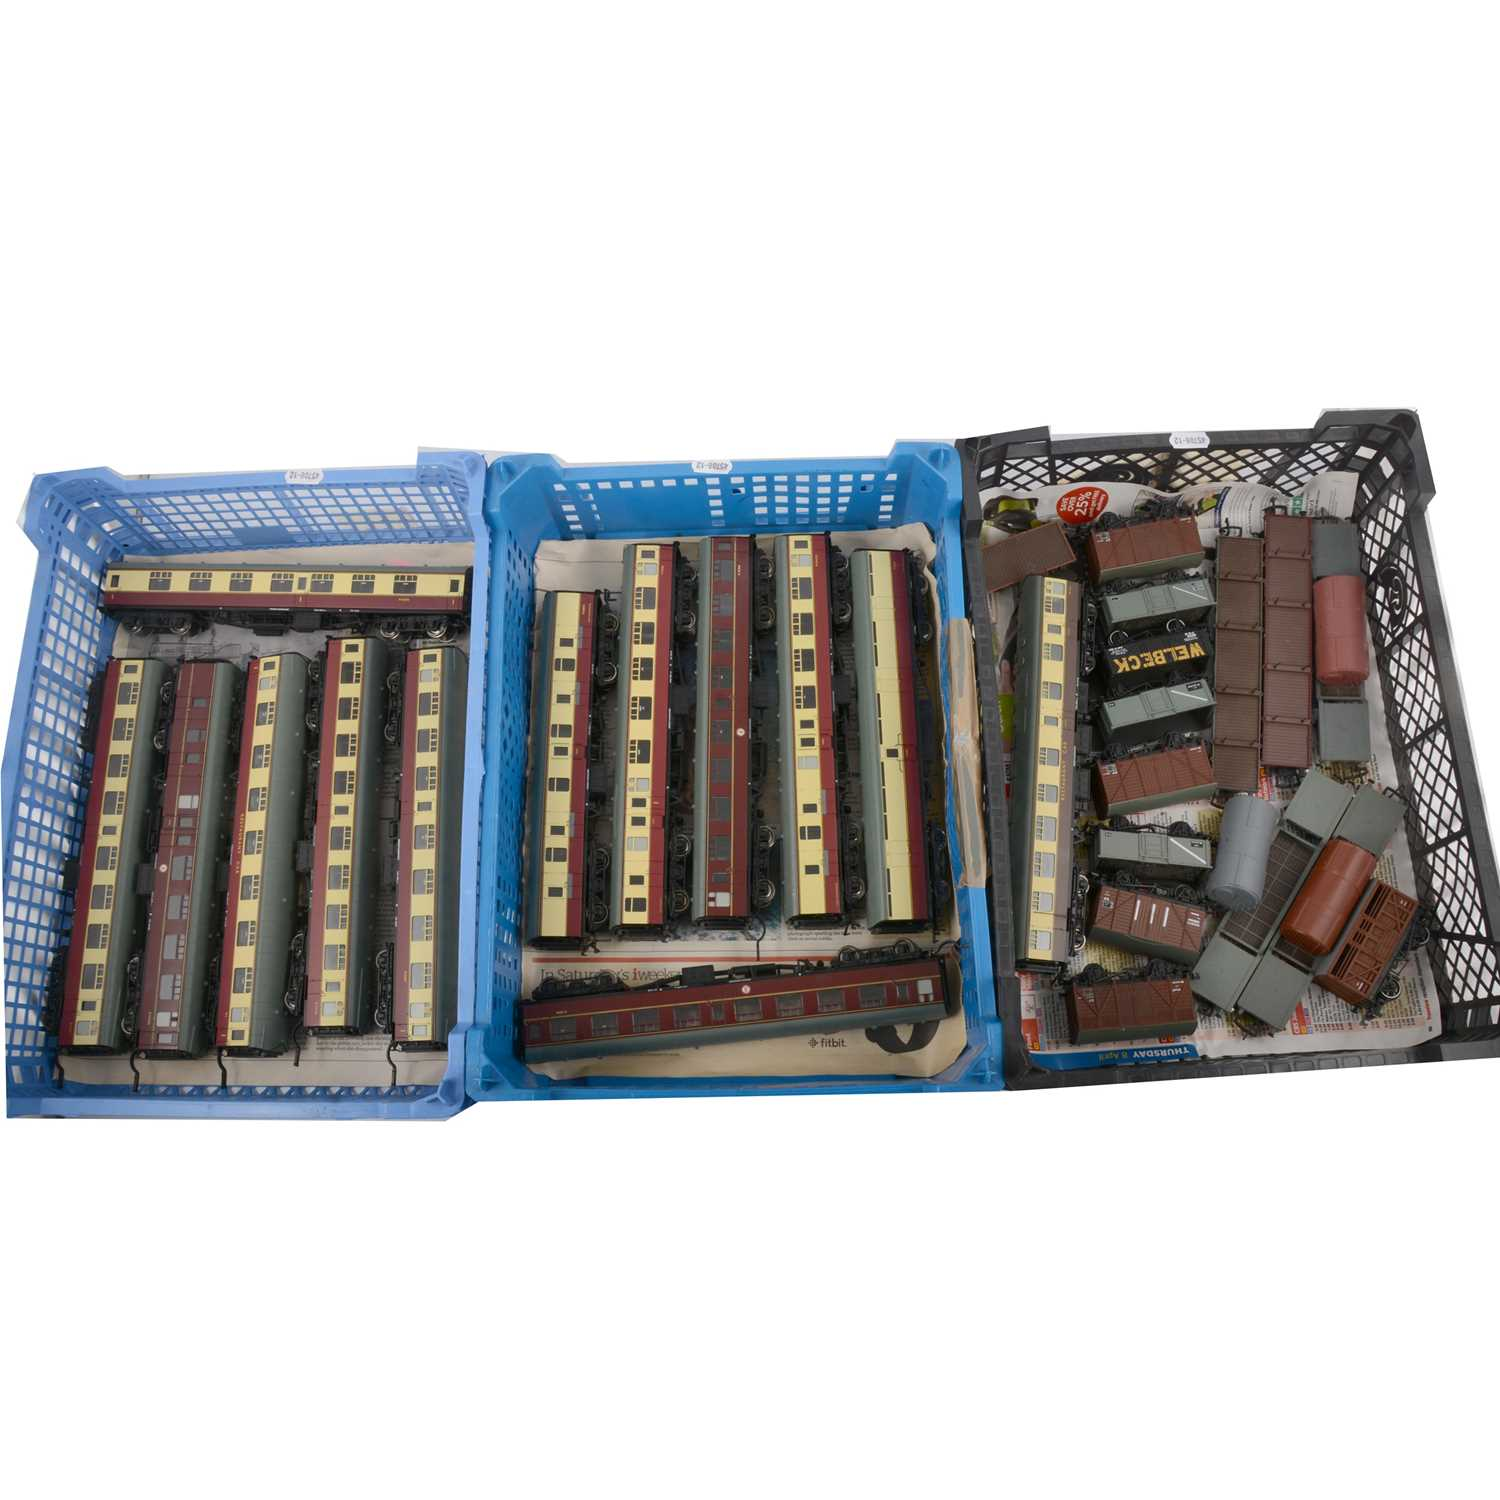 Lot 32 - Bachmann OO gauge model railway passenger coaches and rolling stock.